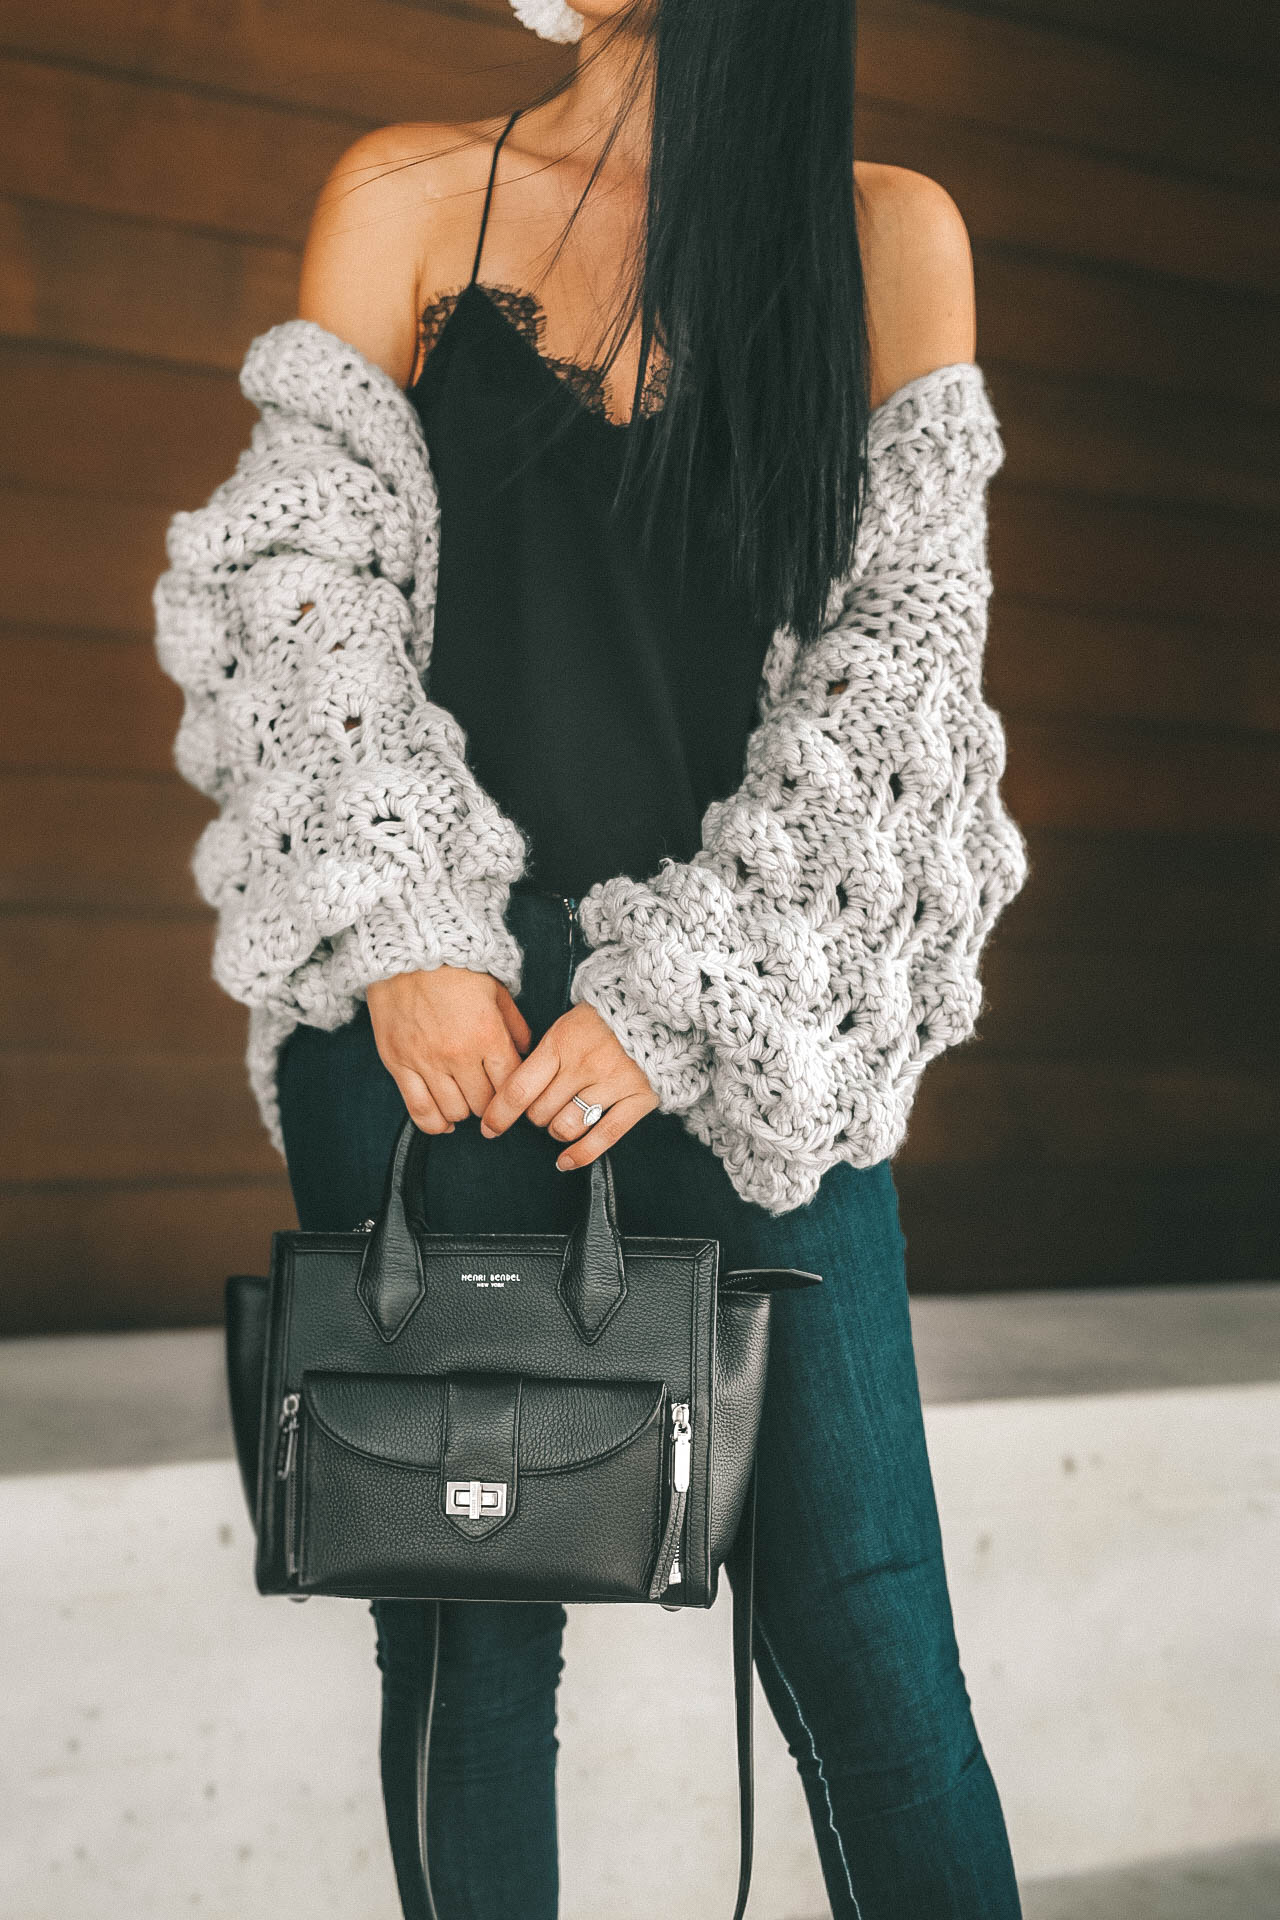 DTKAustin is sharing details on 12 of her must have, affordable cardigans to transition into Fall. Each cardigan is from Chicwish, handbag is Henri Bendel. | Knit Cardigan for Fall | how to style a knit cardigan | knit cardigan outfit || Dressed to Kill #fashion #style #womensoutfit #womensfashion #cardigan #knit #knitcardigan #fallstyle #streetstyle #fallfashion #dtkaustin | Cozy Cardigan: I Like Knit Like That featured by popular Austin fashion blogger Dressed to Kill